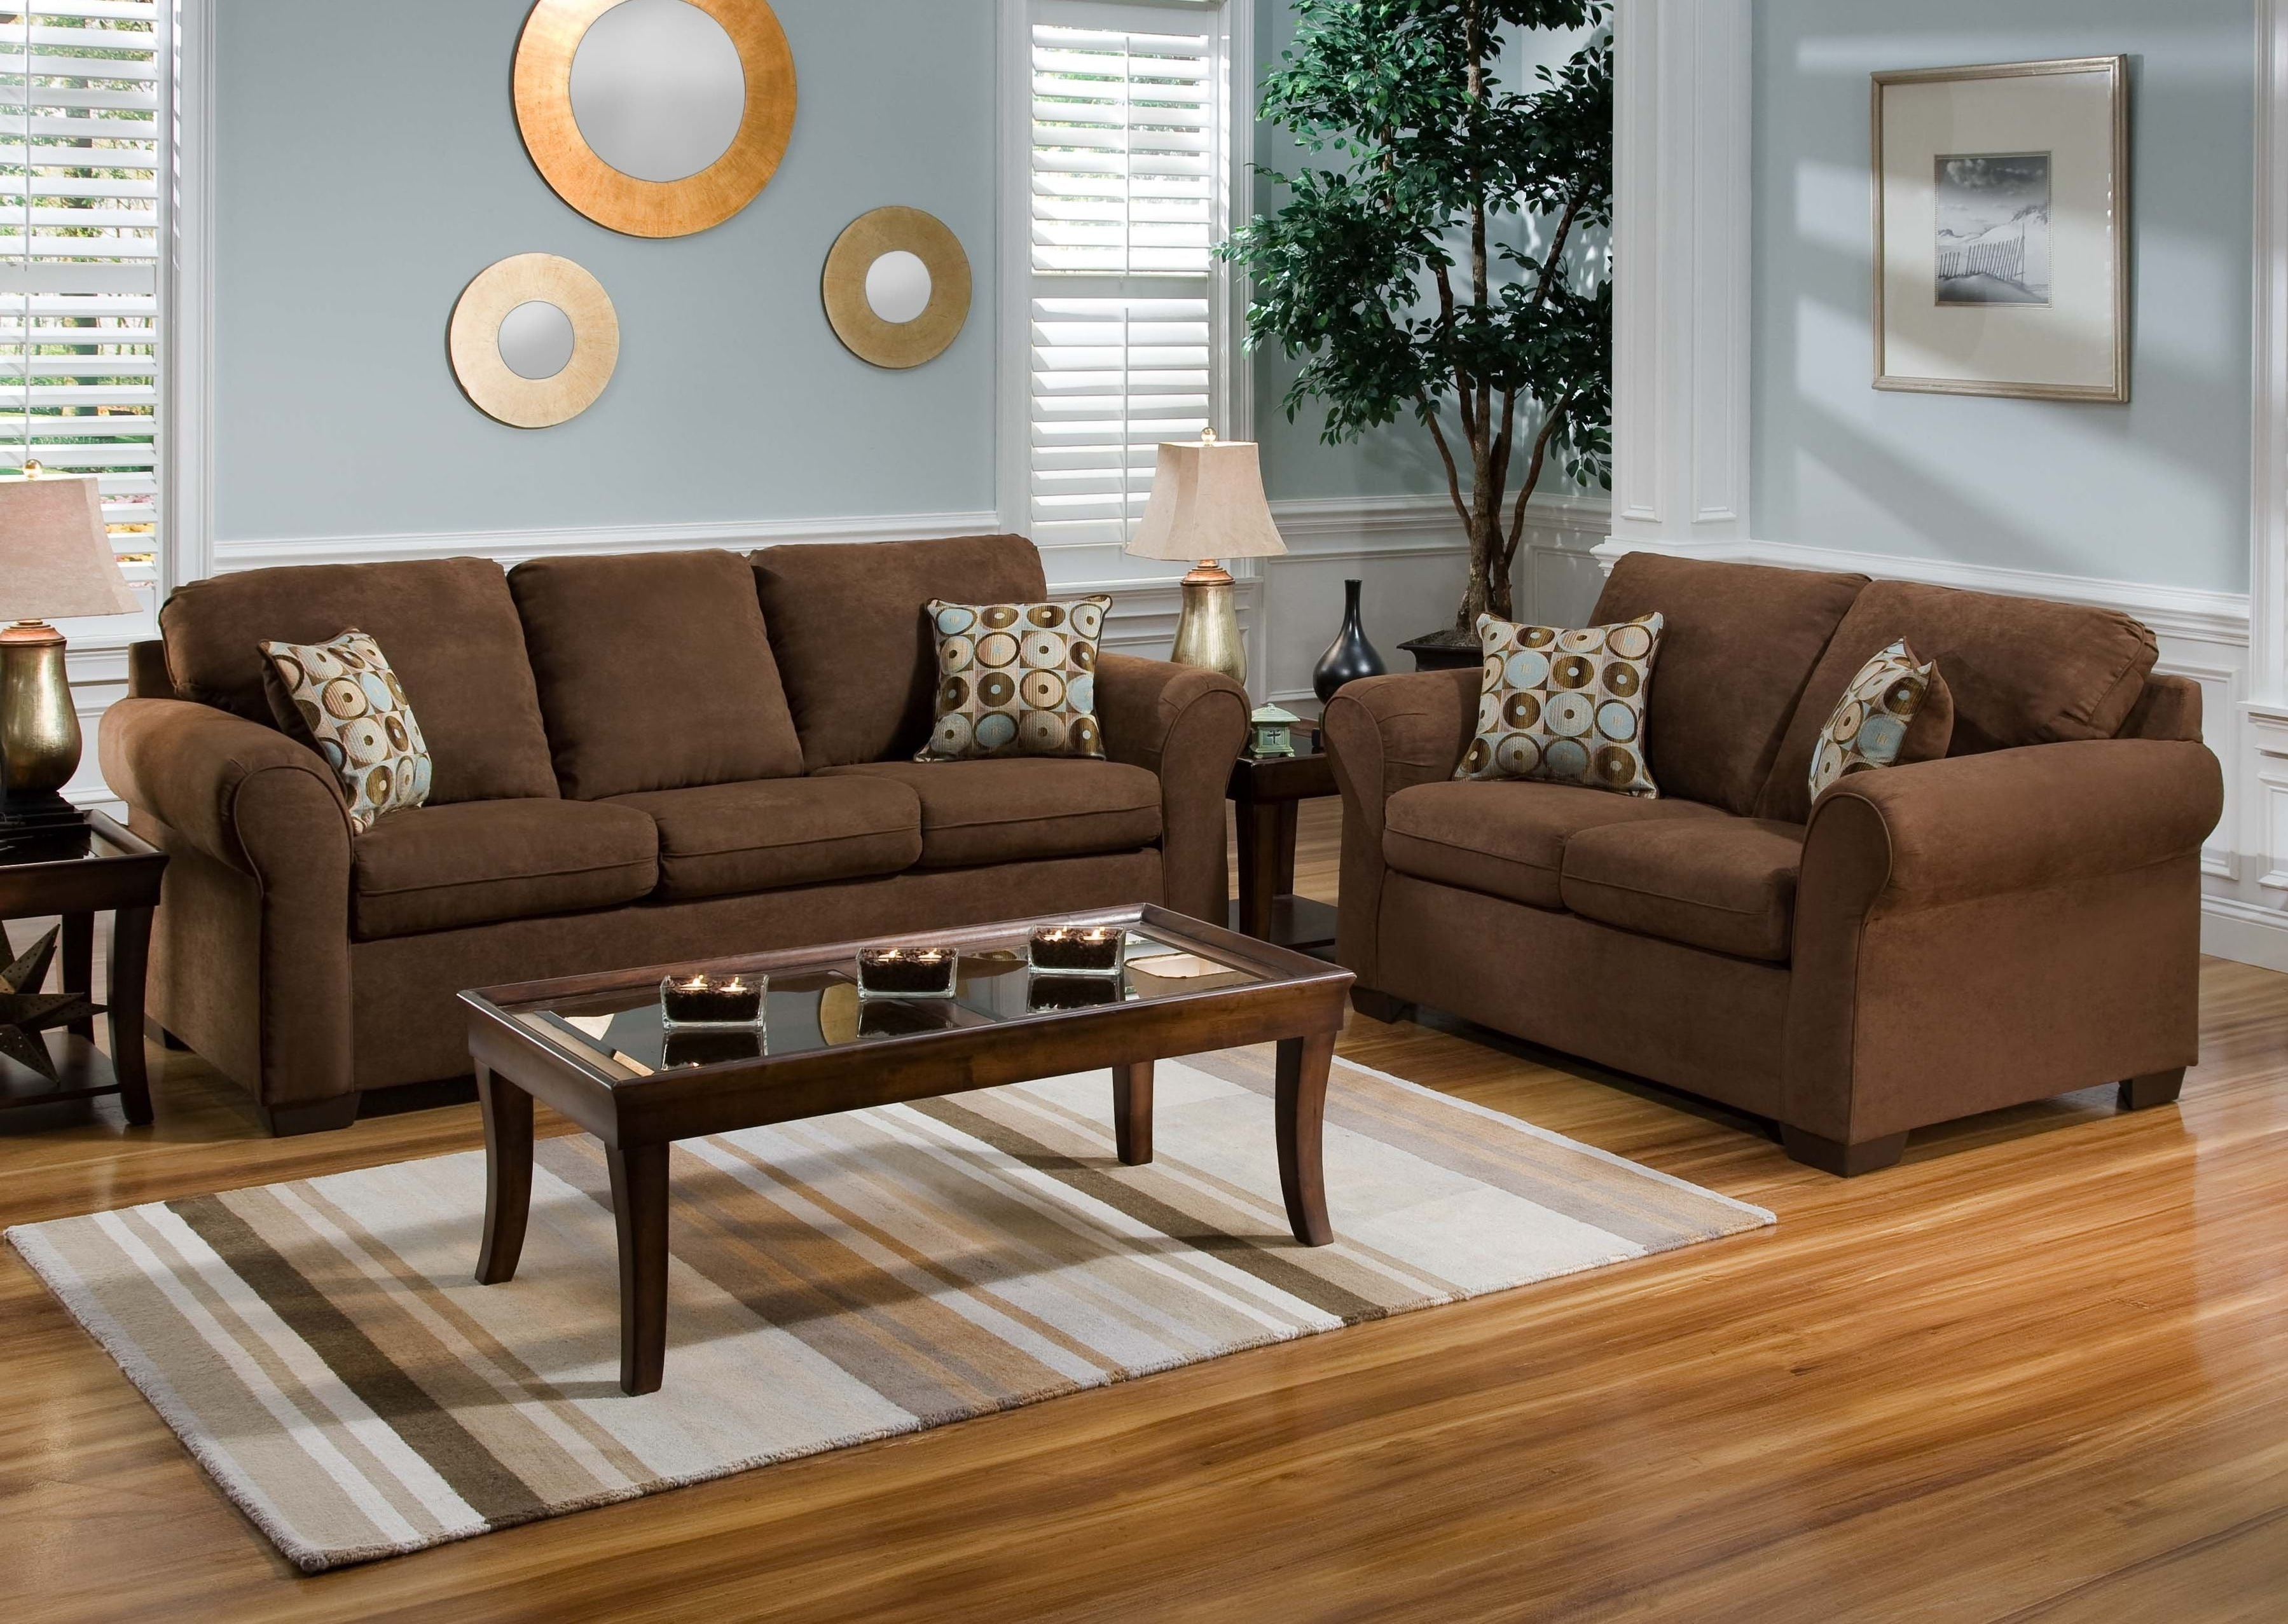 Fashionable Living Room Paint Ideas With Brown Couch And Blue Excerpt With Brown Couch Wall Accents (View 15 of 15)